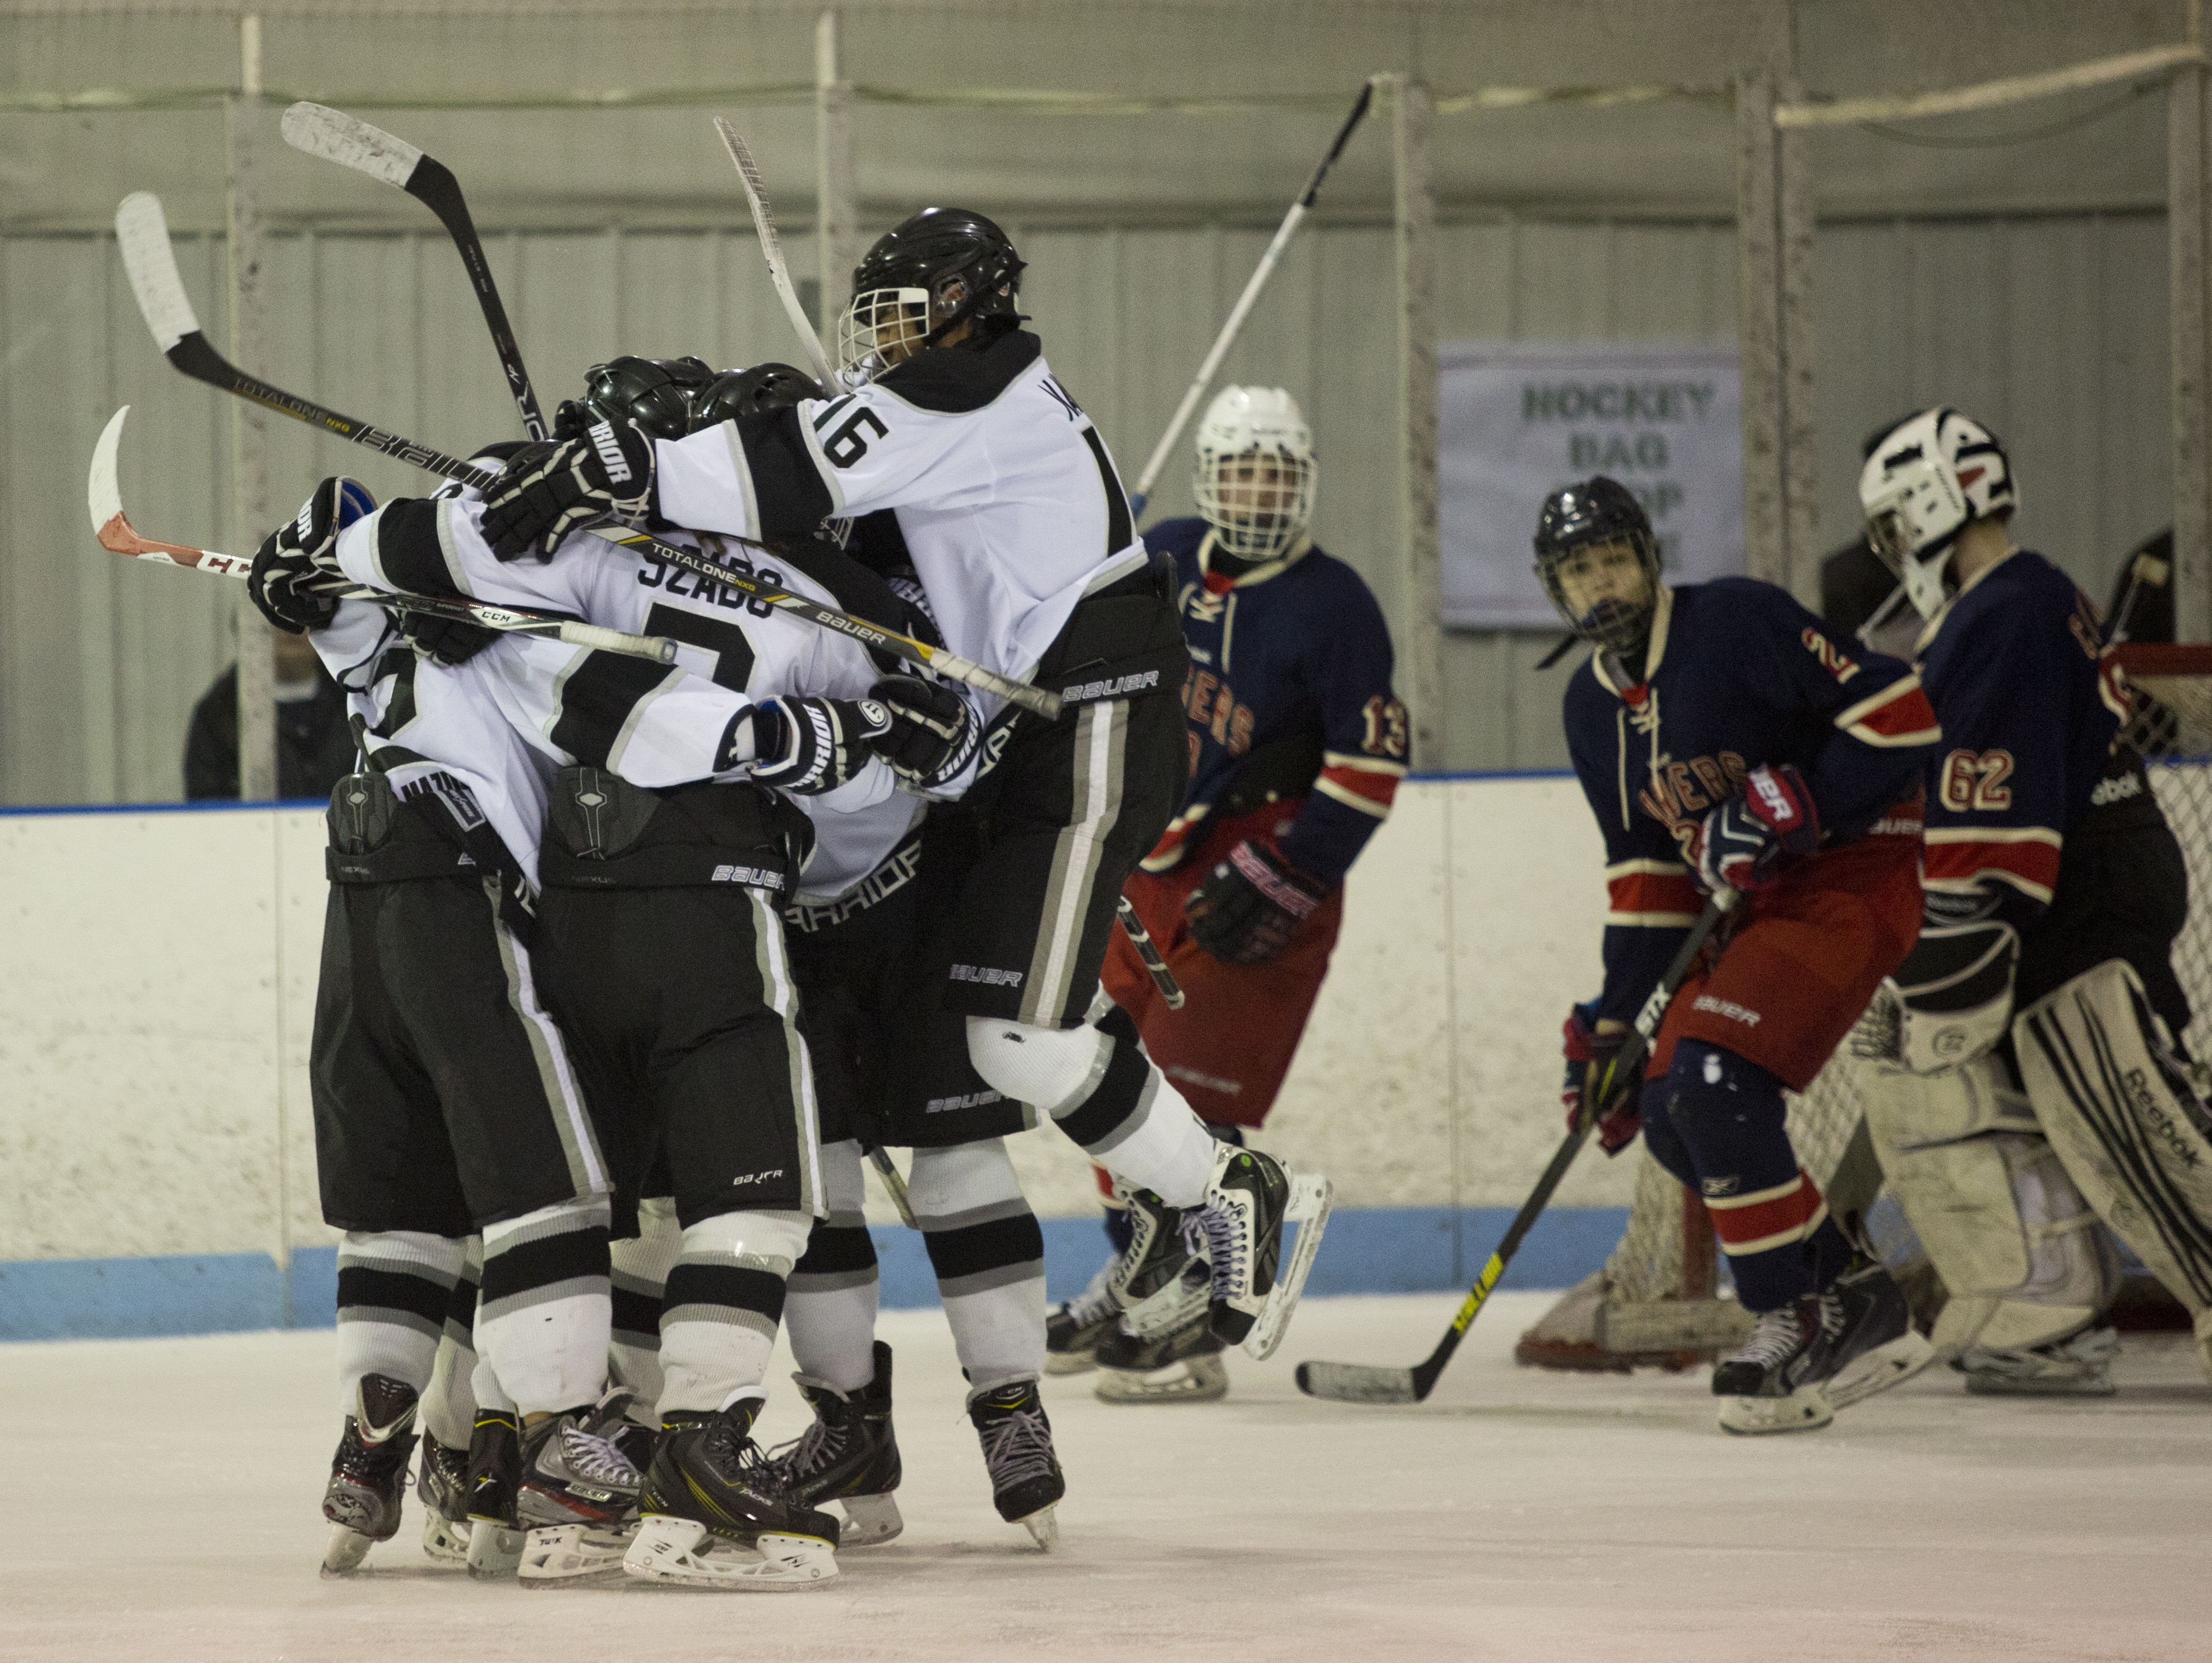 Mississauga Ice Warriors celebrate scoring a goal during a Silver Stick Bantam AA hockey game Saturday at Glacier Pointe in Port Huron Township. JEFFREY M. SMITH/TIMES HERALD.